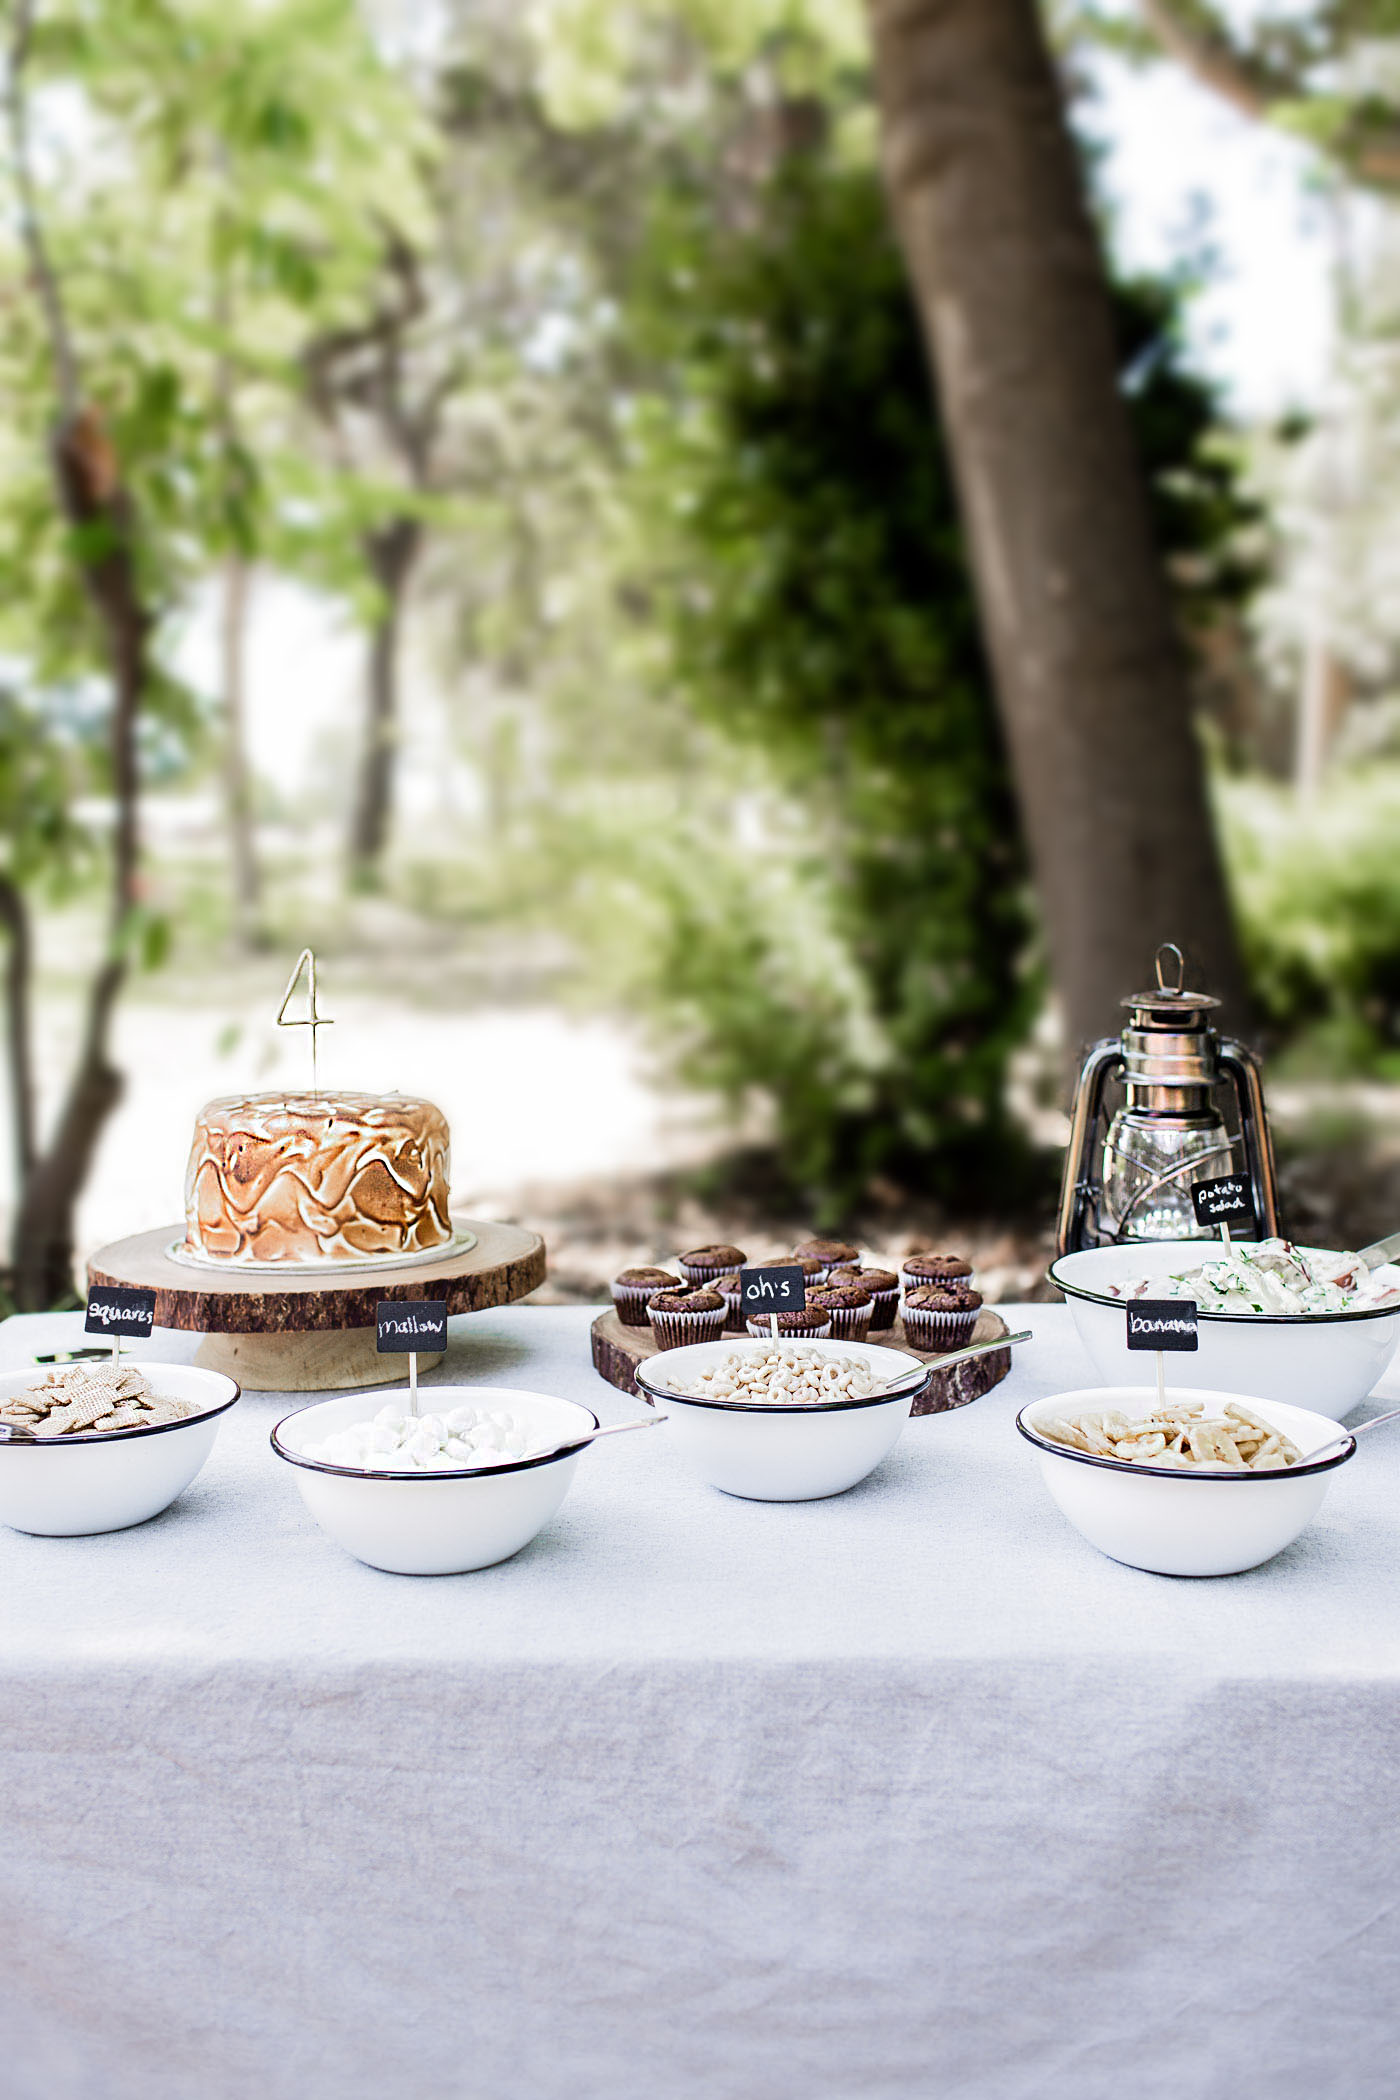 5 Tips for Throwing a Memorable Birthday Party